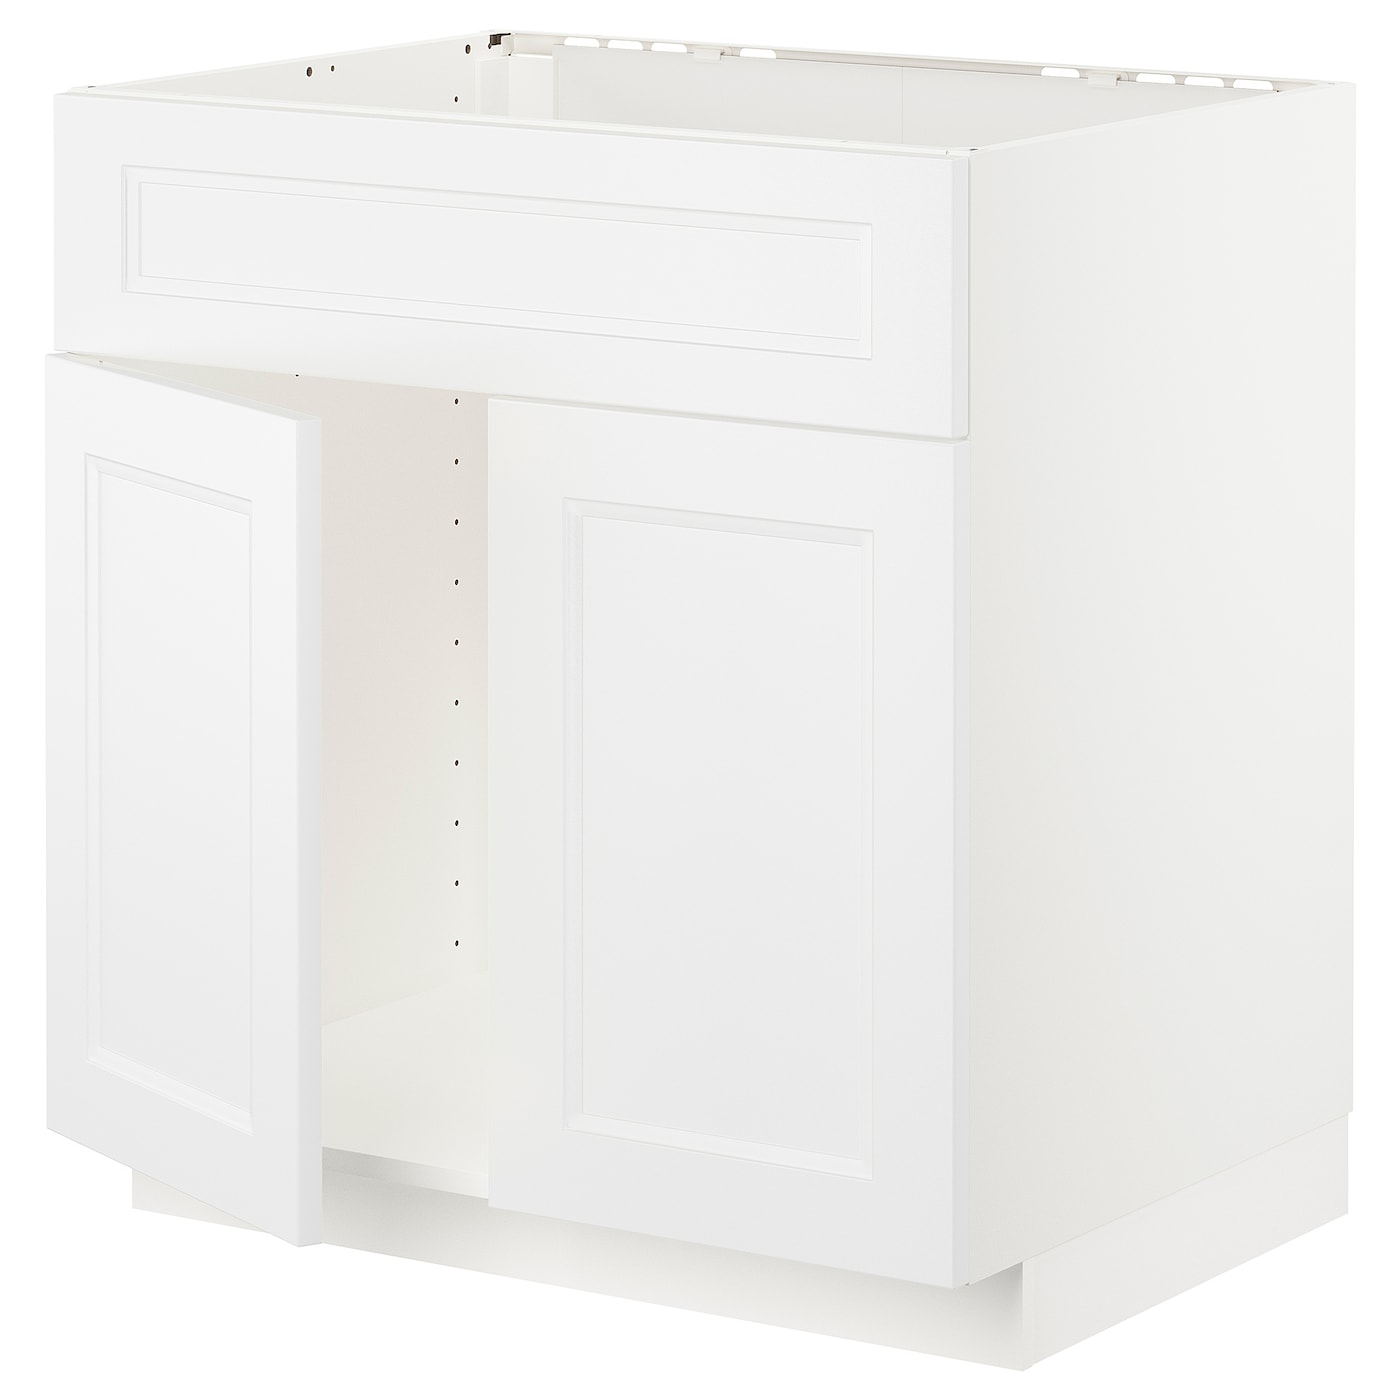 METOD Base cabinet f sink w 2 doors/front - white, Axstad ...